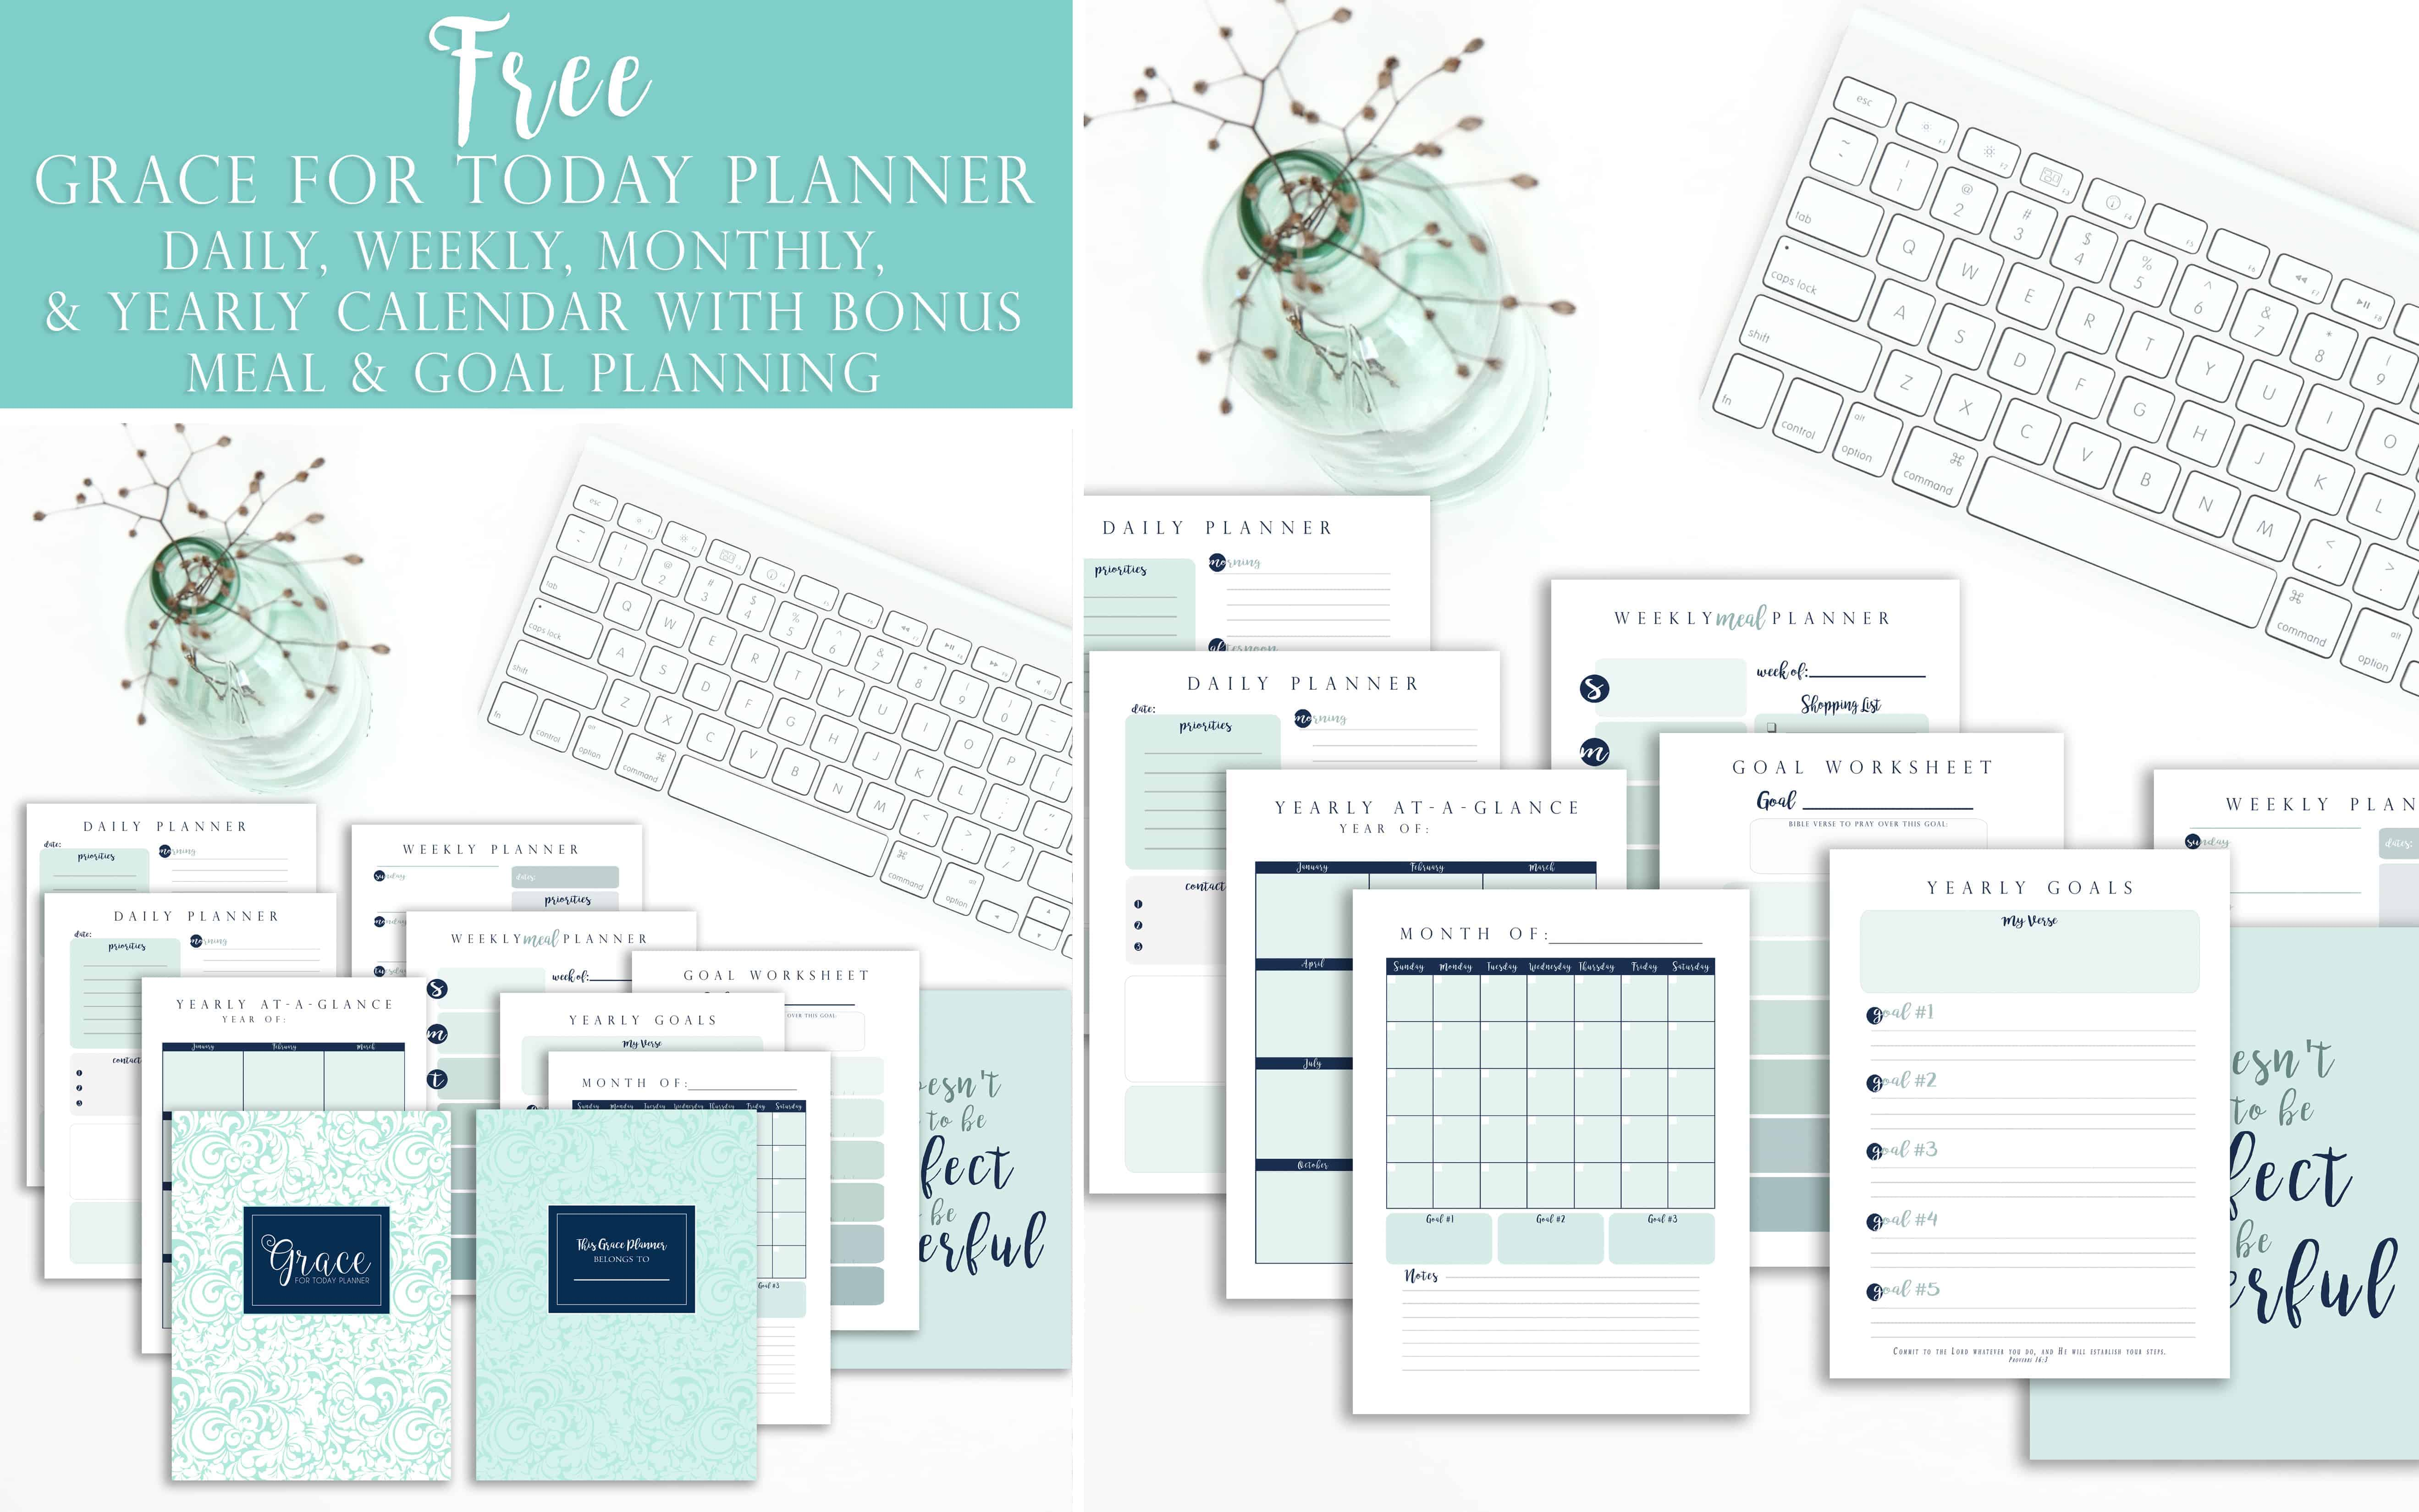 Get Your Free Calendar With Bible Verse